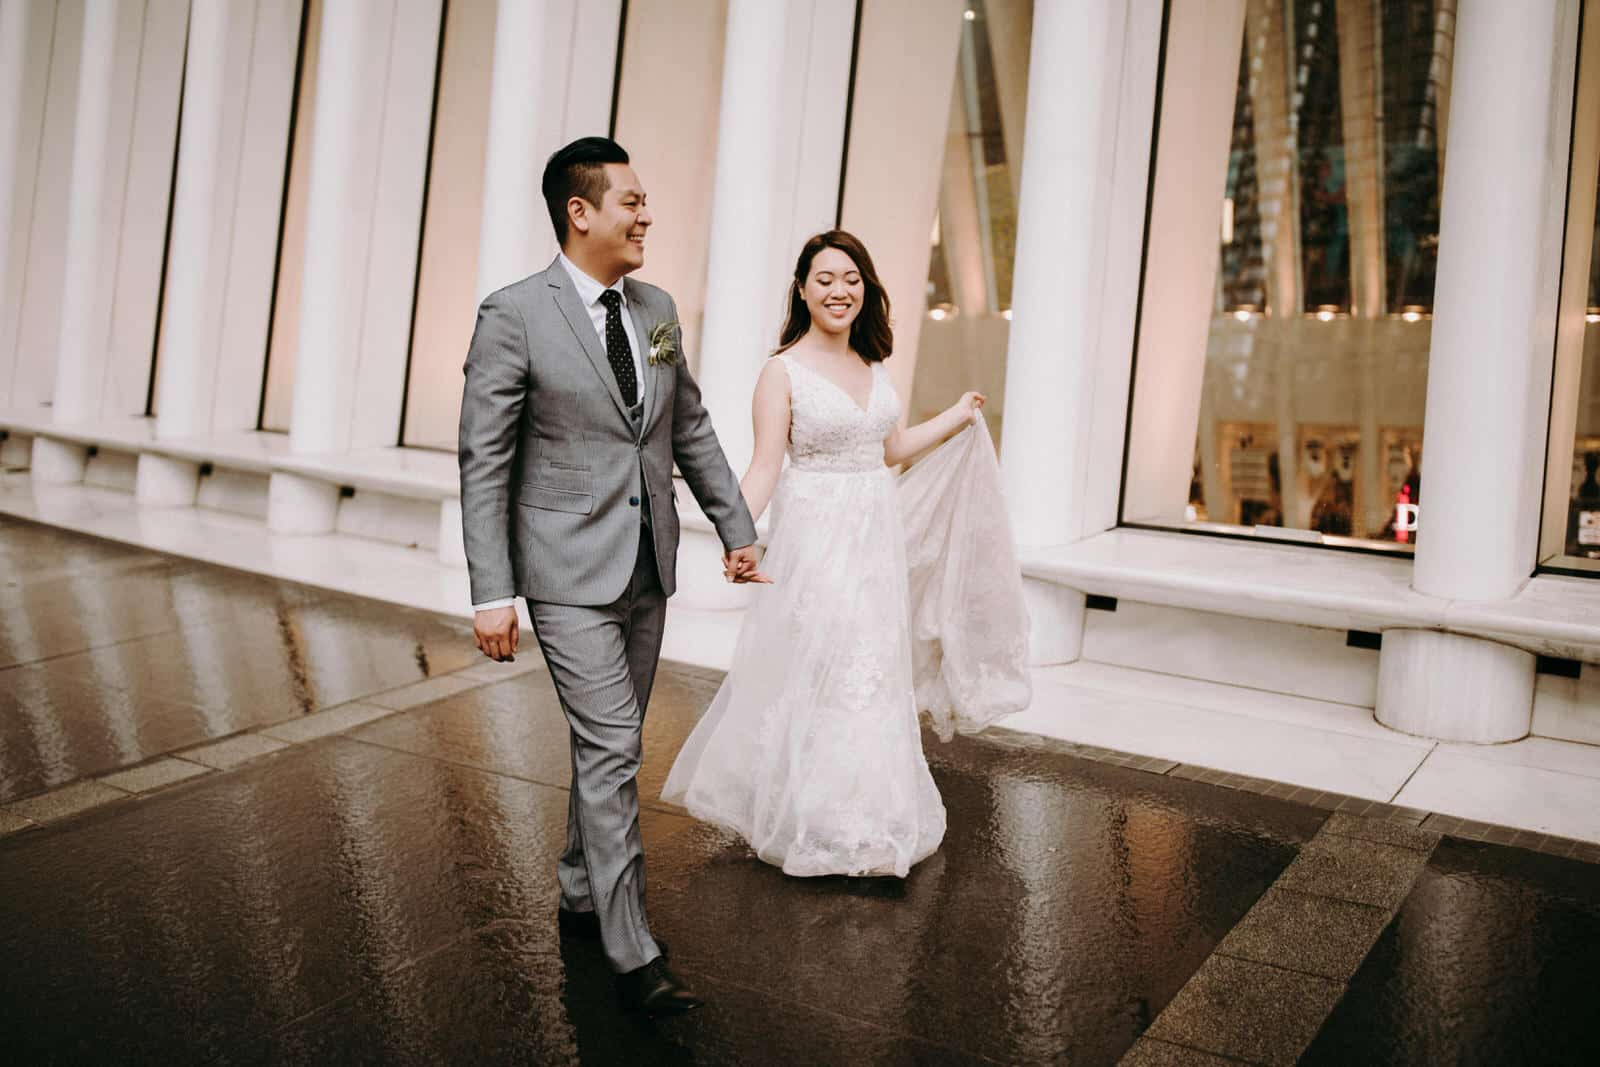 The wedding couple is walking along an architectural building.